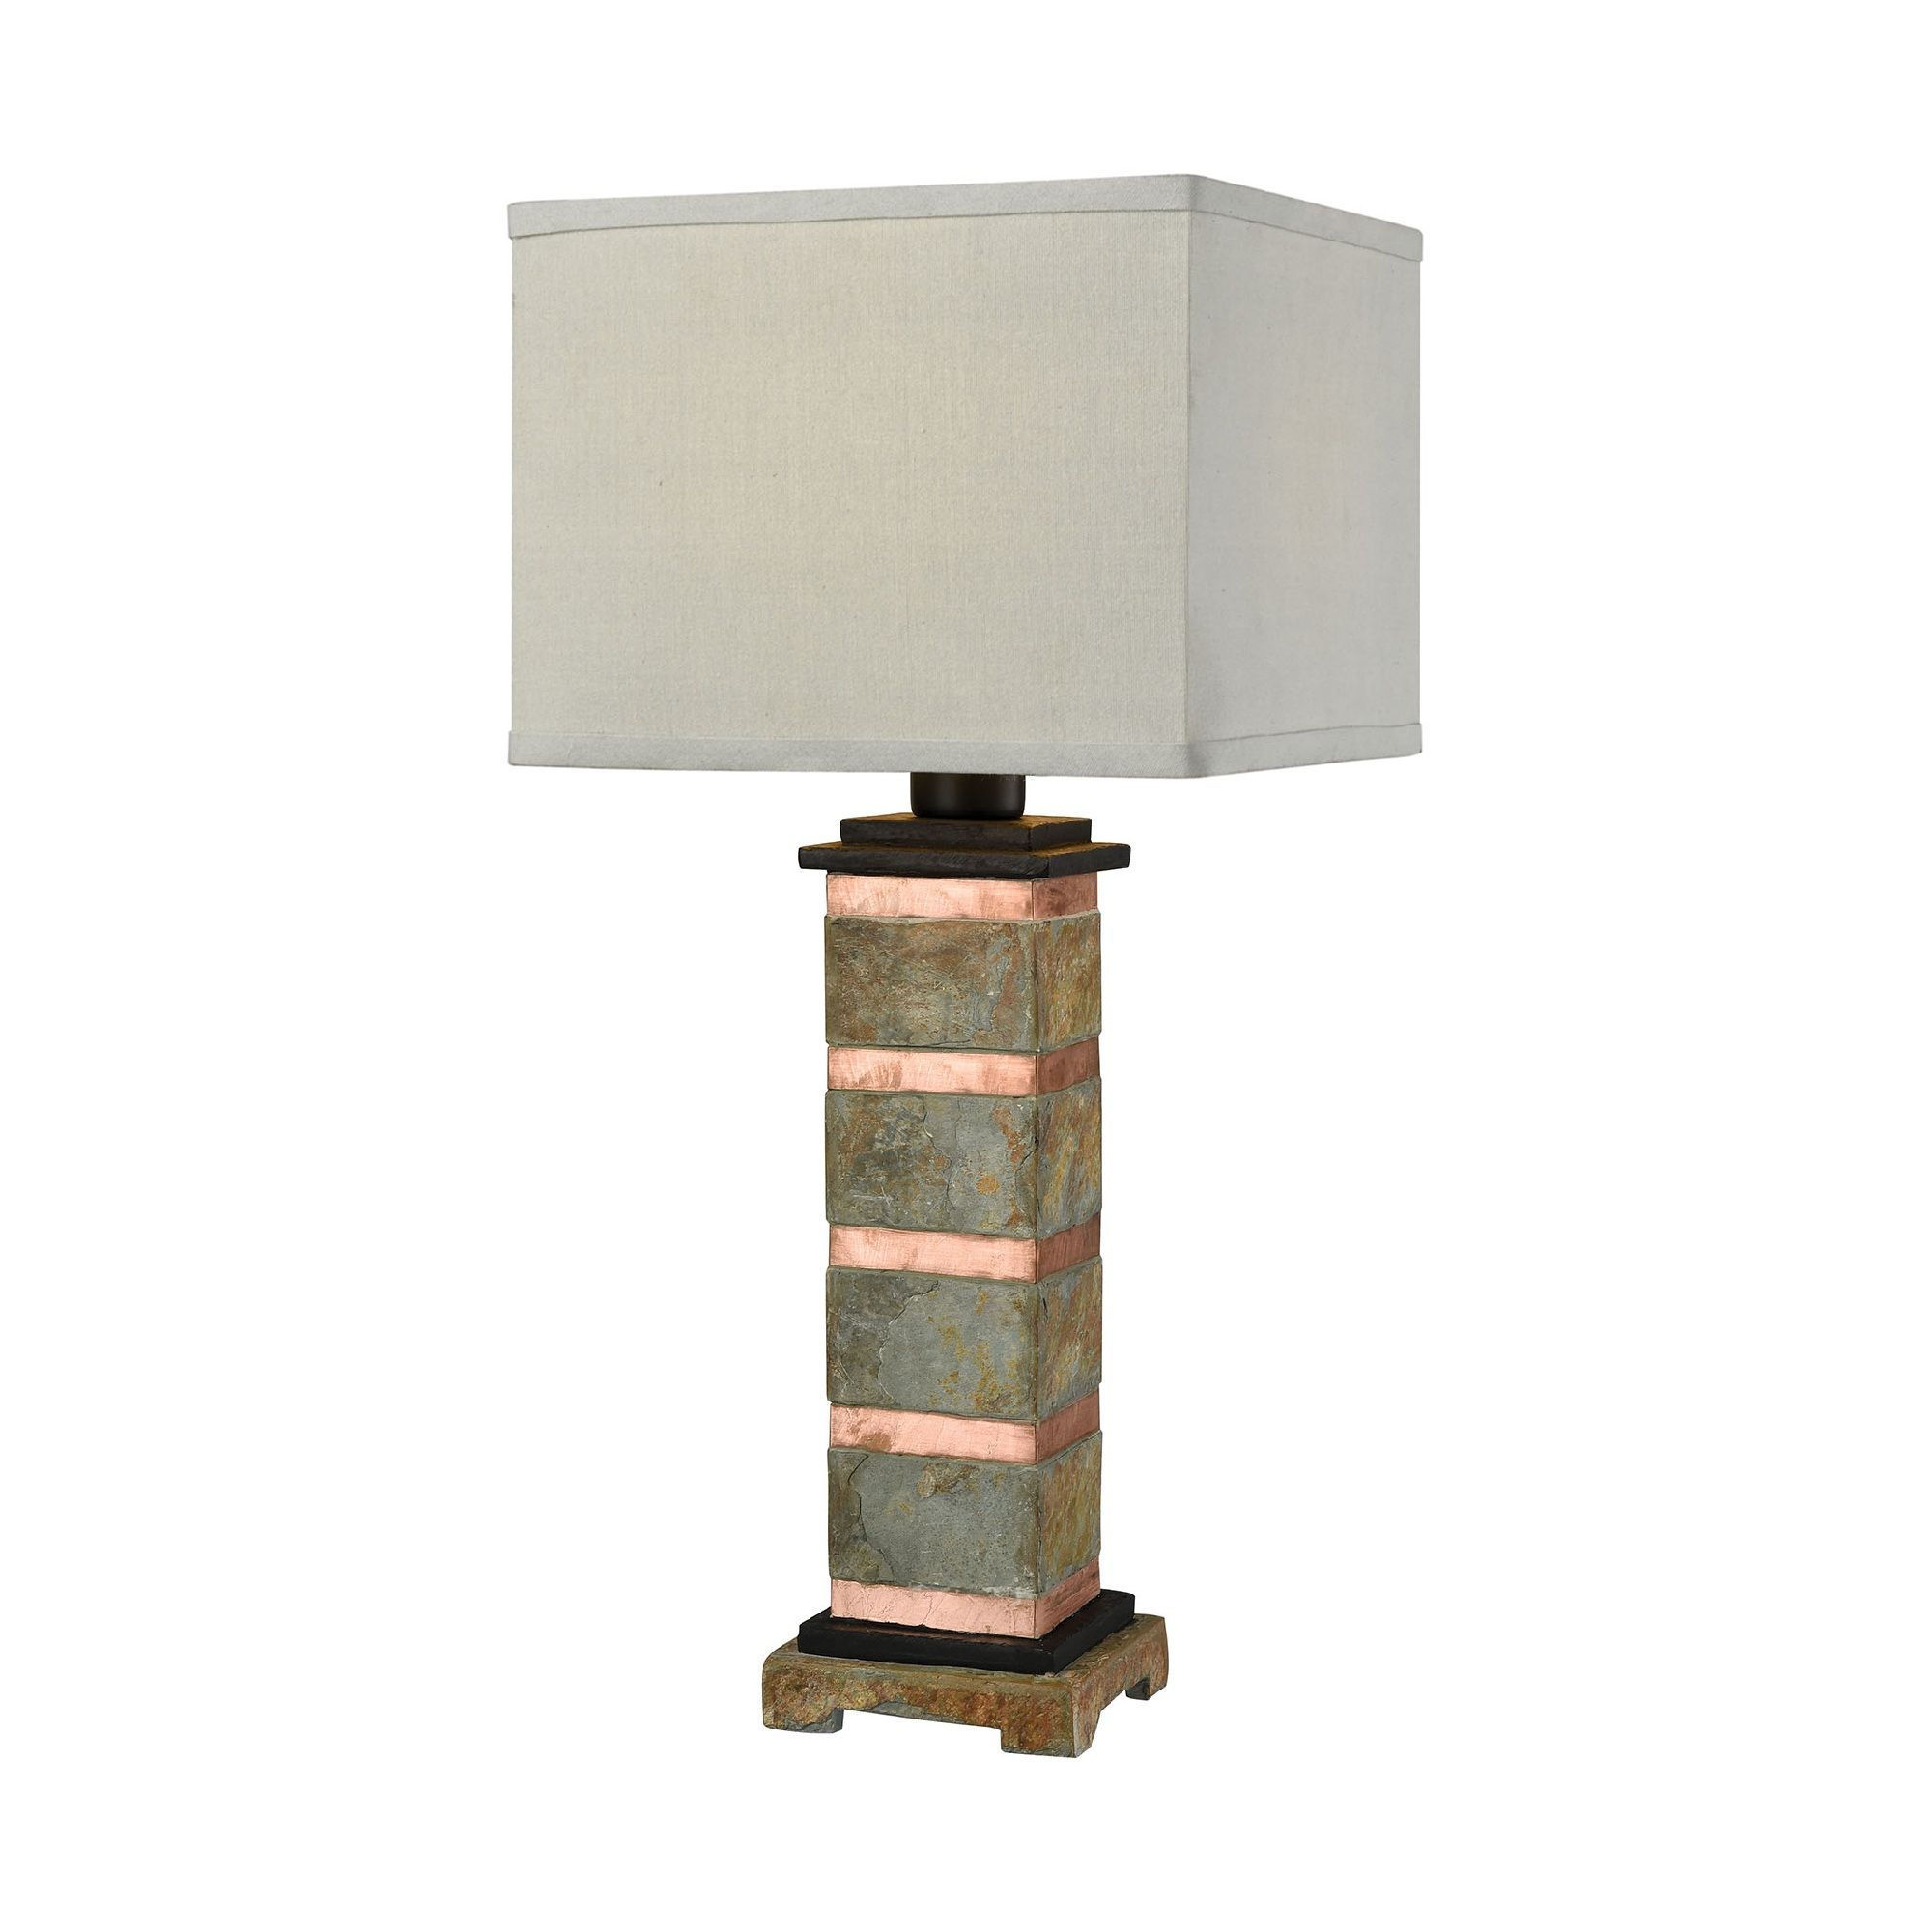 27 Gray And Brown Stone Body Outdoor Table Lamp With White Rectangular Shade Outdoor Table Lamps Natural Table Lamps Titan Lighting